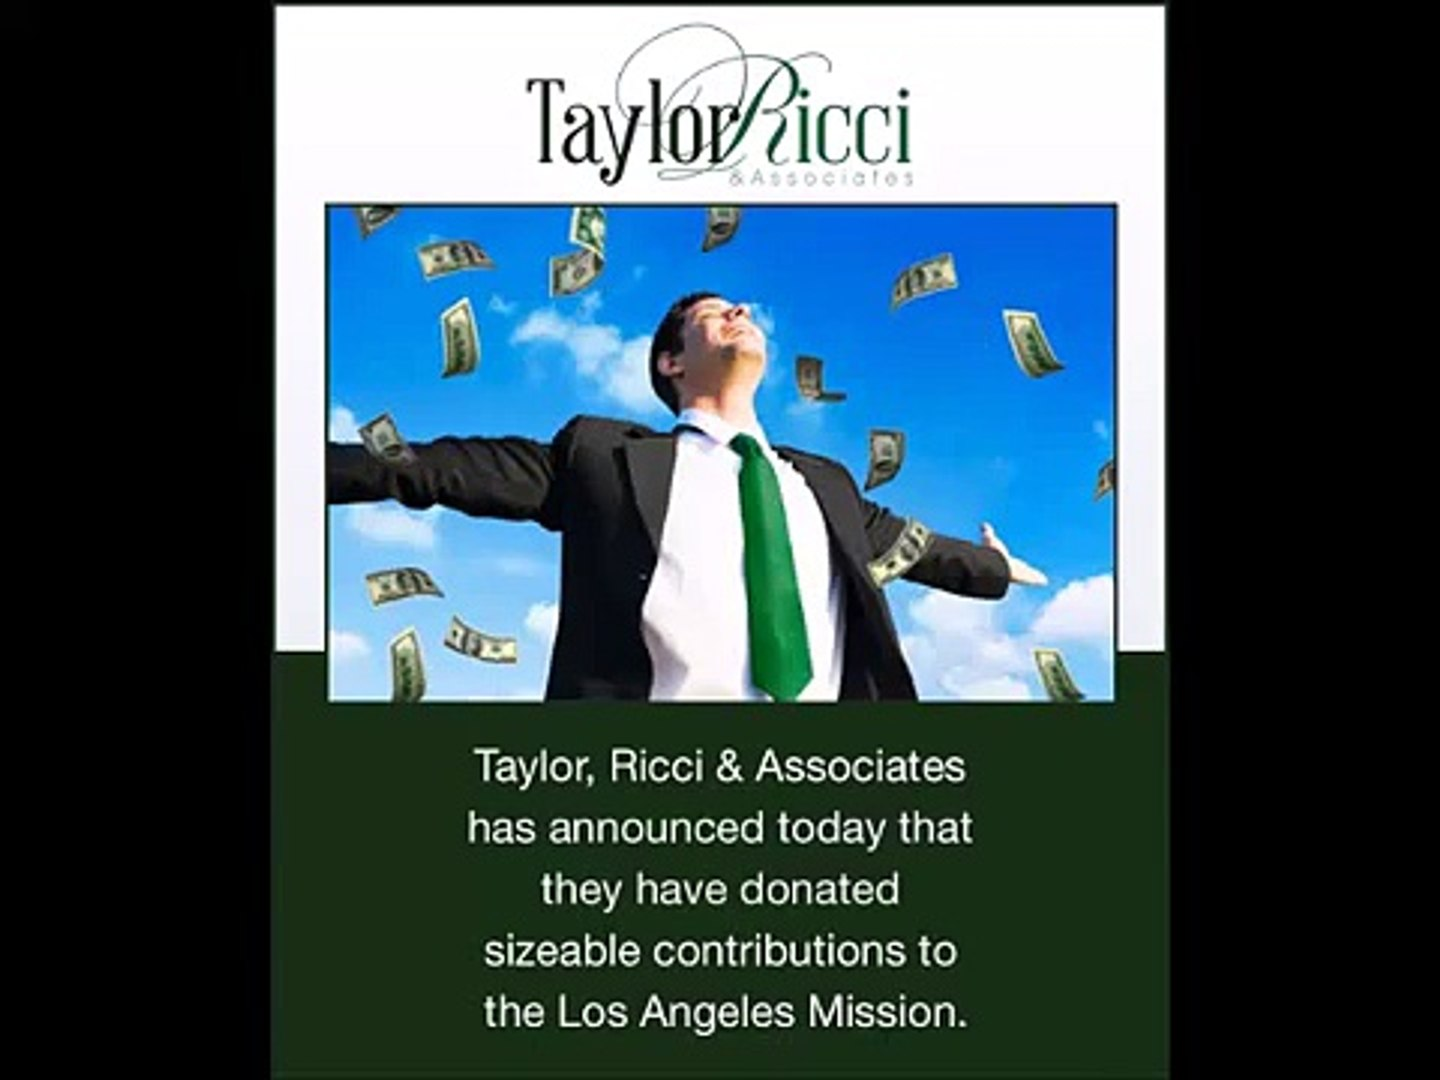 Charitable Donations to the Los Angeles Mission - Taylor Ricci And Associates